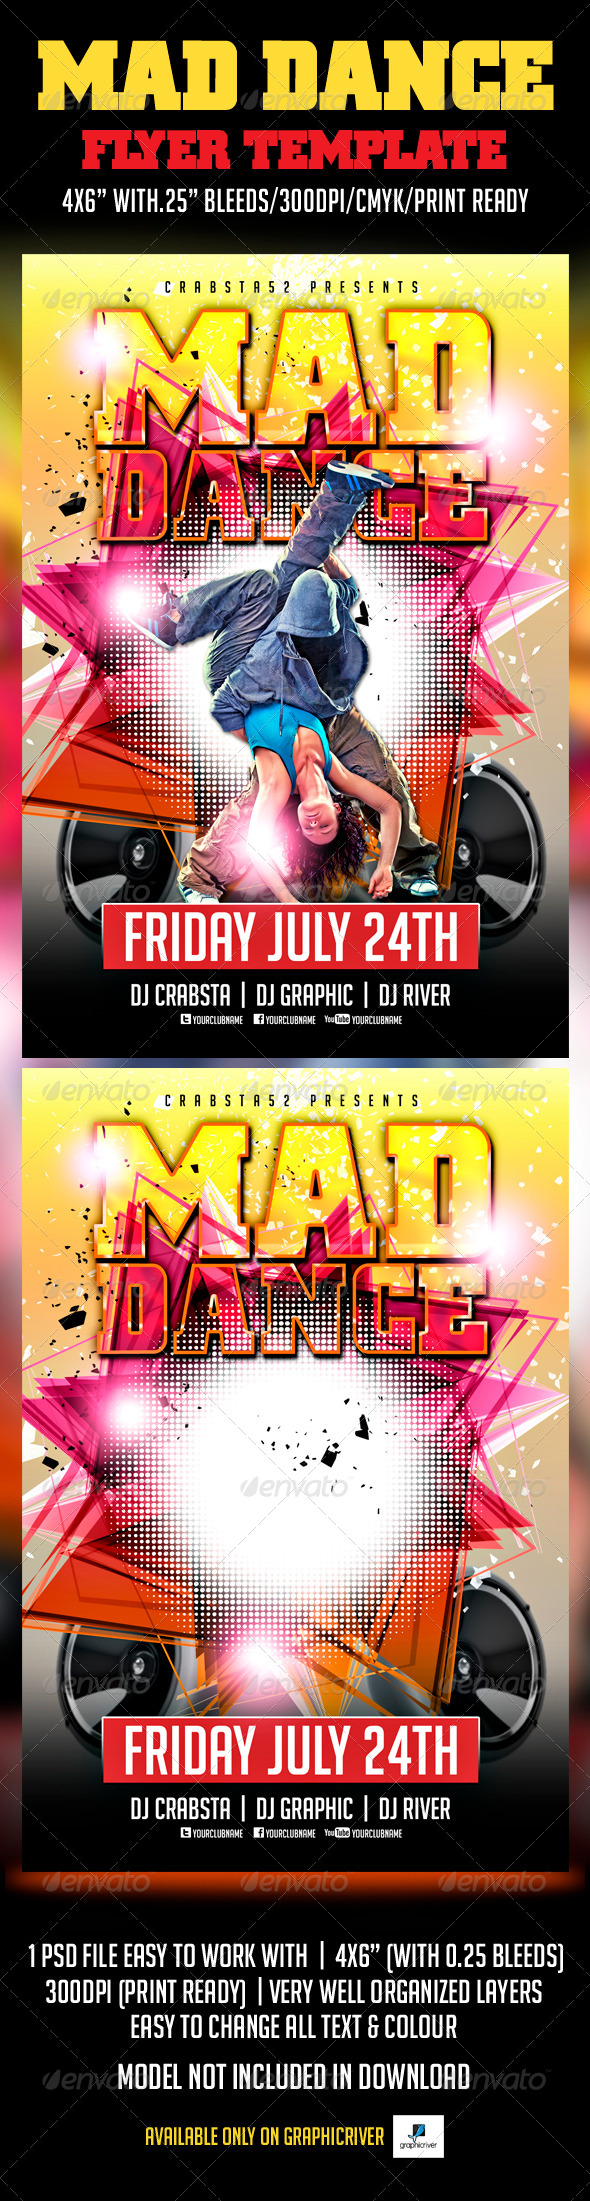 GraphicRiver Mad Dance Flyer Template 5955158